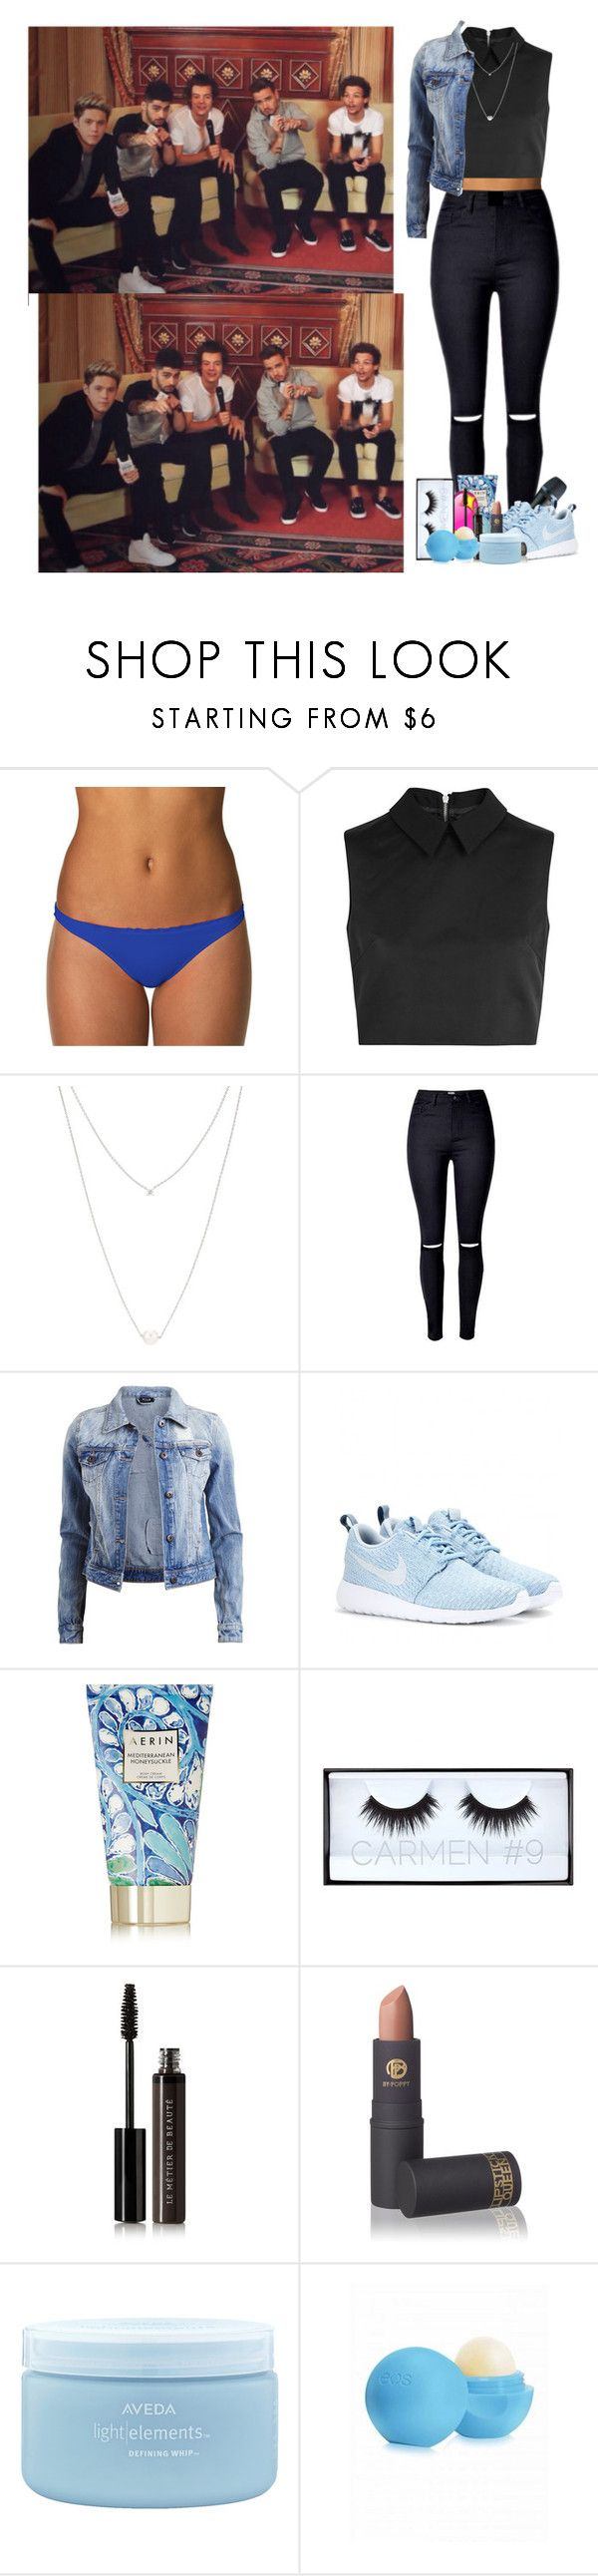 """""""To interview One direction"""" by dreamofjess ❤ liked on Polyvore featuring B. Swim, McQ by Alexander McQueen, Maison Margiela, VILA, Sennheiser, NIKE, AERIN, Huda Beauty, Le Métier de Beauté and Lipstick Queen"""